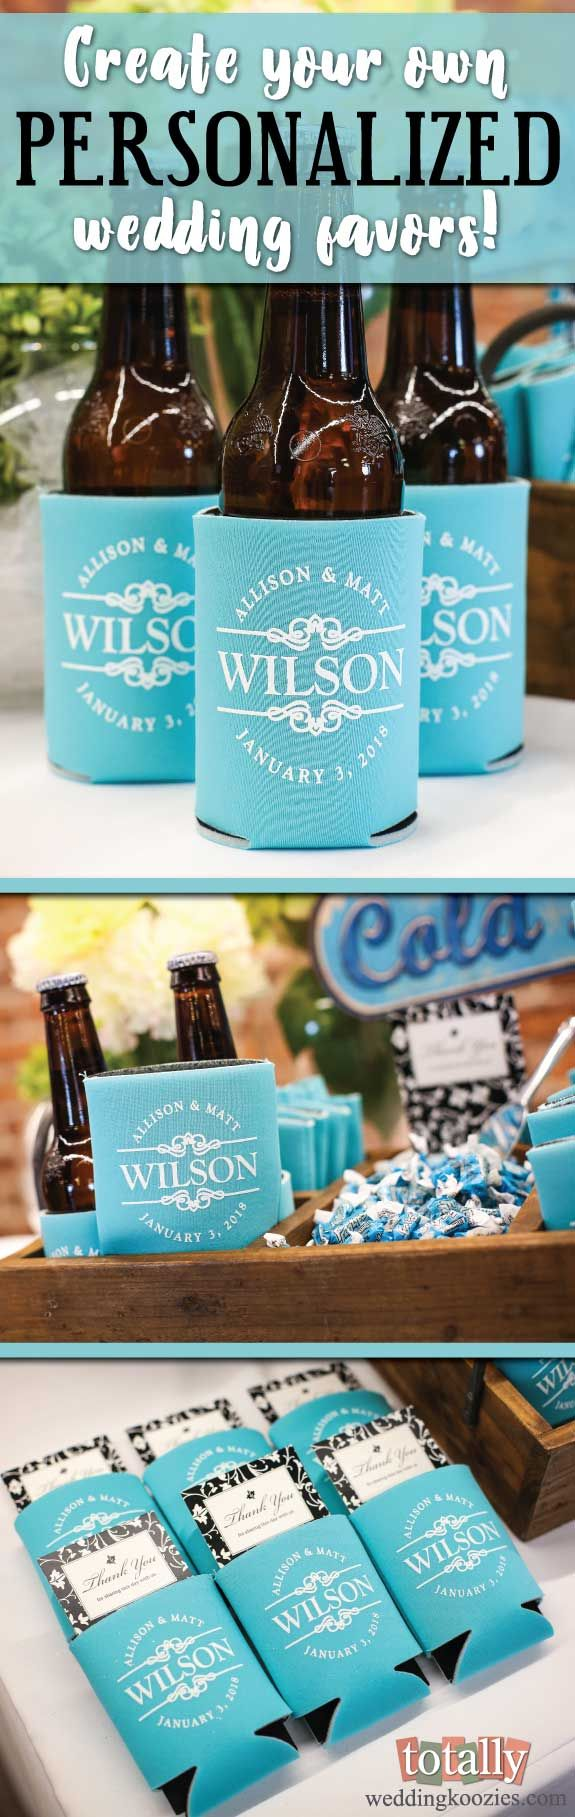 Create your own personalized #wedding favors with Totally Wedding Koozies and our easy online design tool! We offer over 800 customizable artwork templates, 6 styles of koozies & 45 product colors, your options are endless as we can coordinate and match any wedding! Use coupon code PINFREESHIP and receive FREE Ground Shipping in the Continental United States! Code is not valid with other coupon codes and is valid through April 4, 2017!